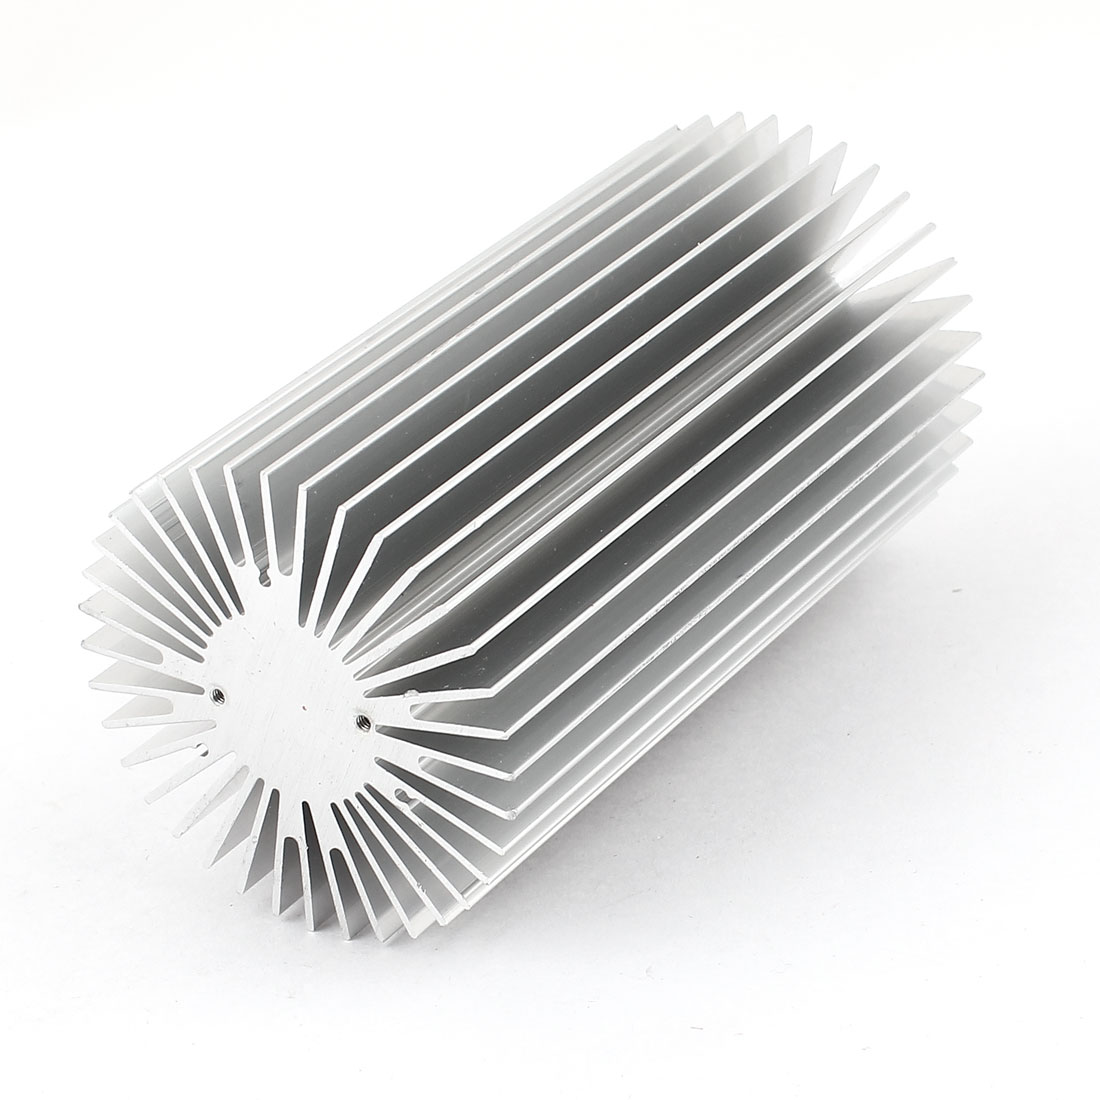 Silver White 55mm x 100mm 10W LED Light Heatsink Aluminium Cooling Fin